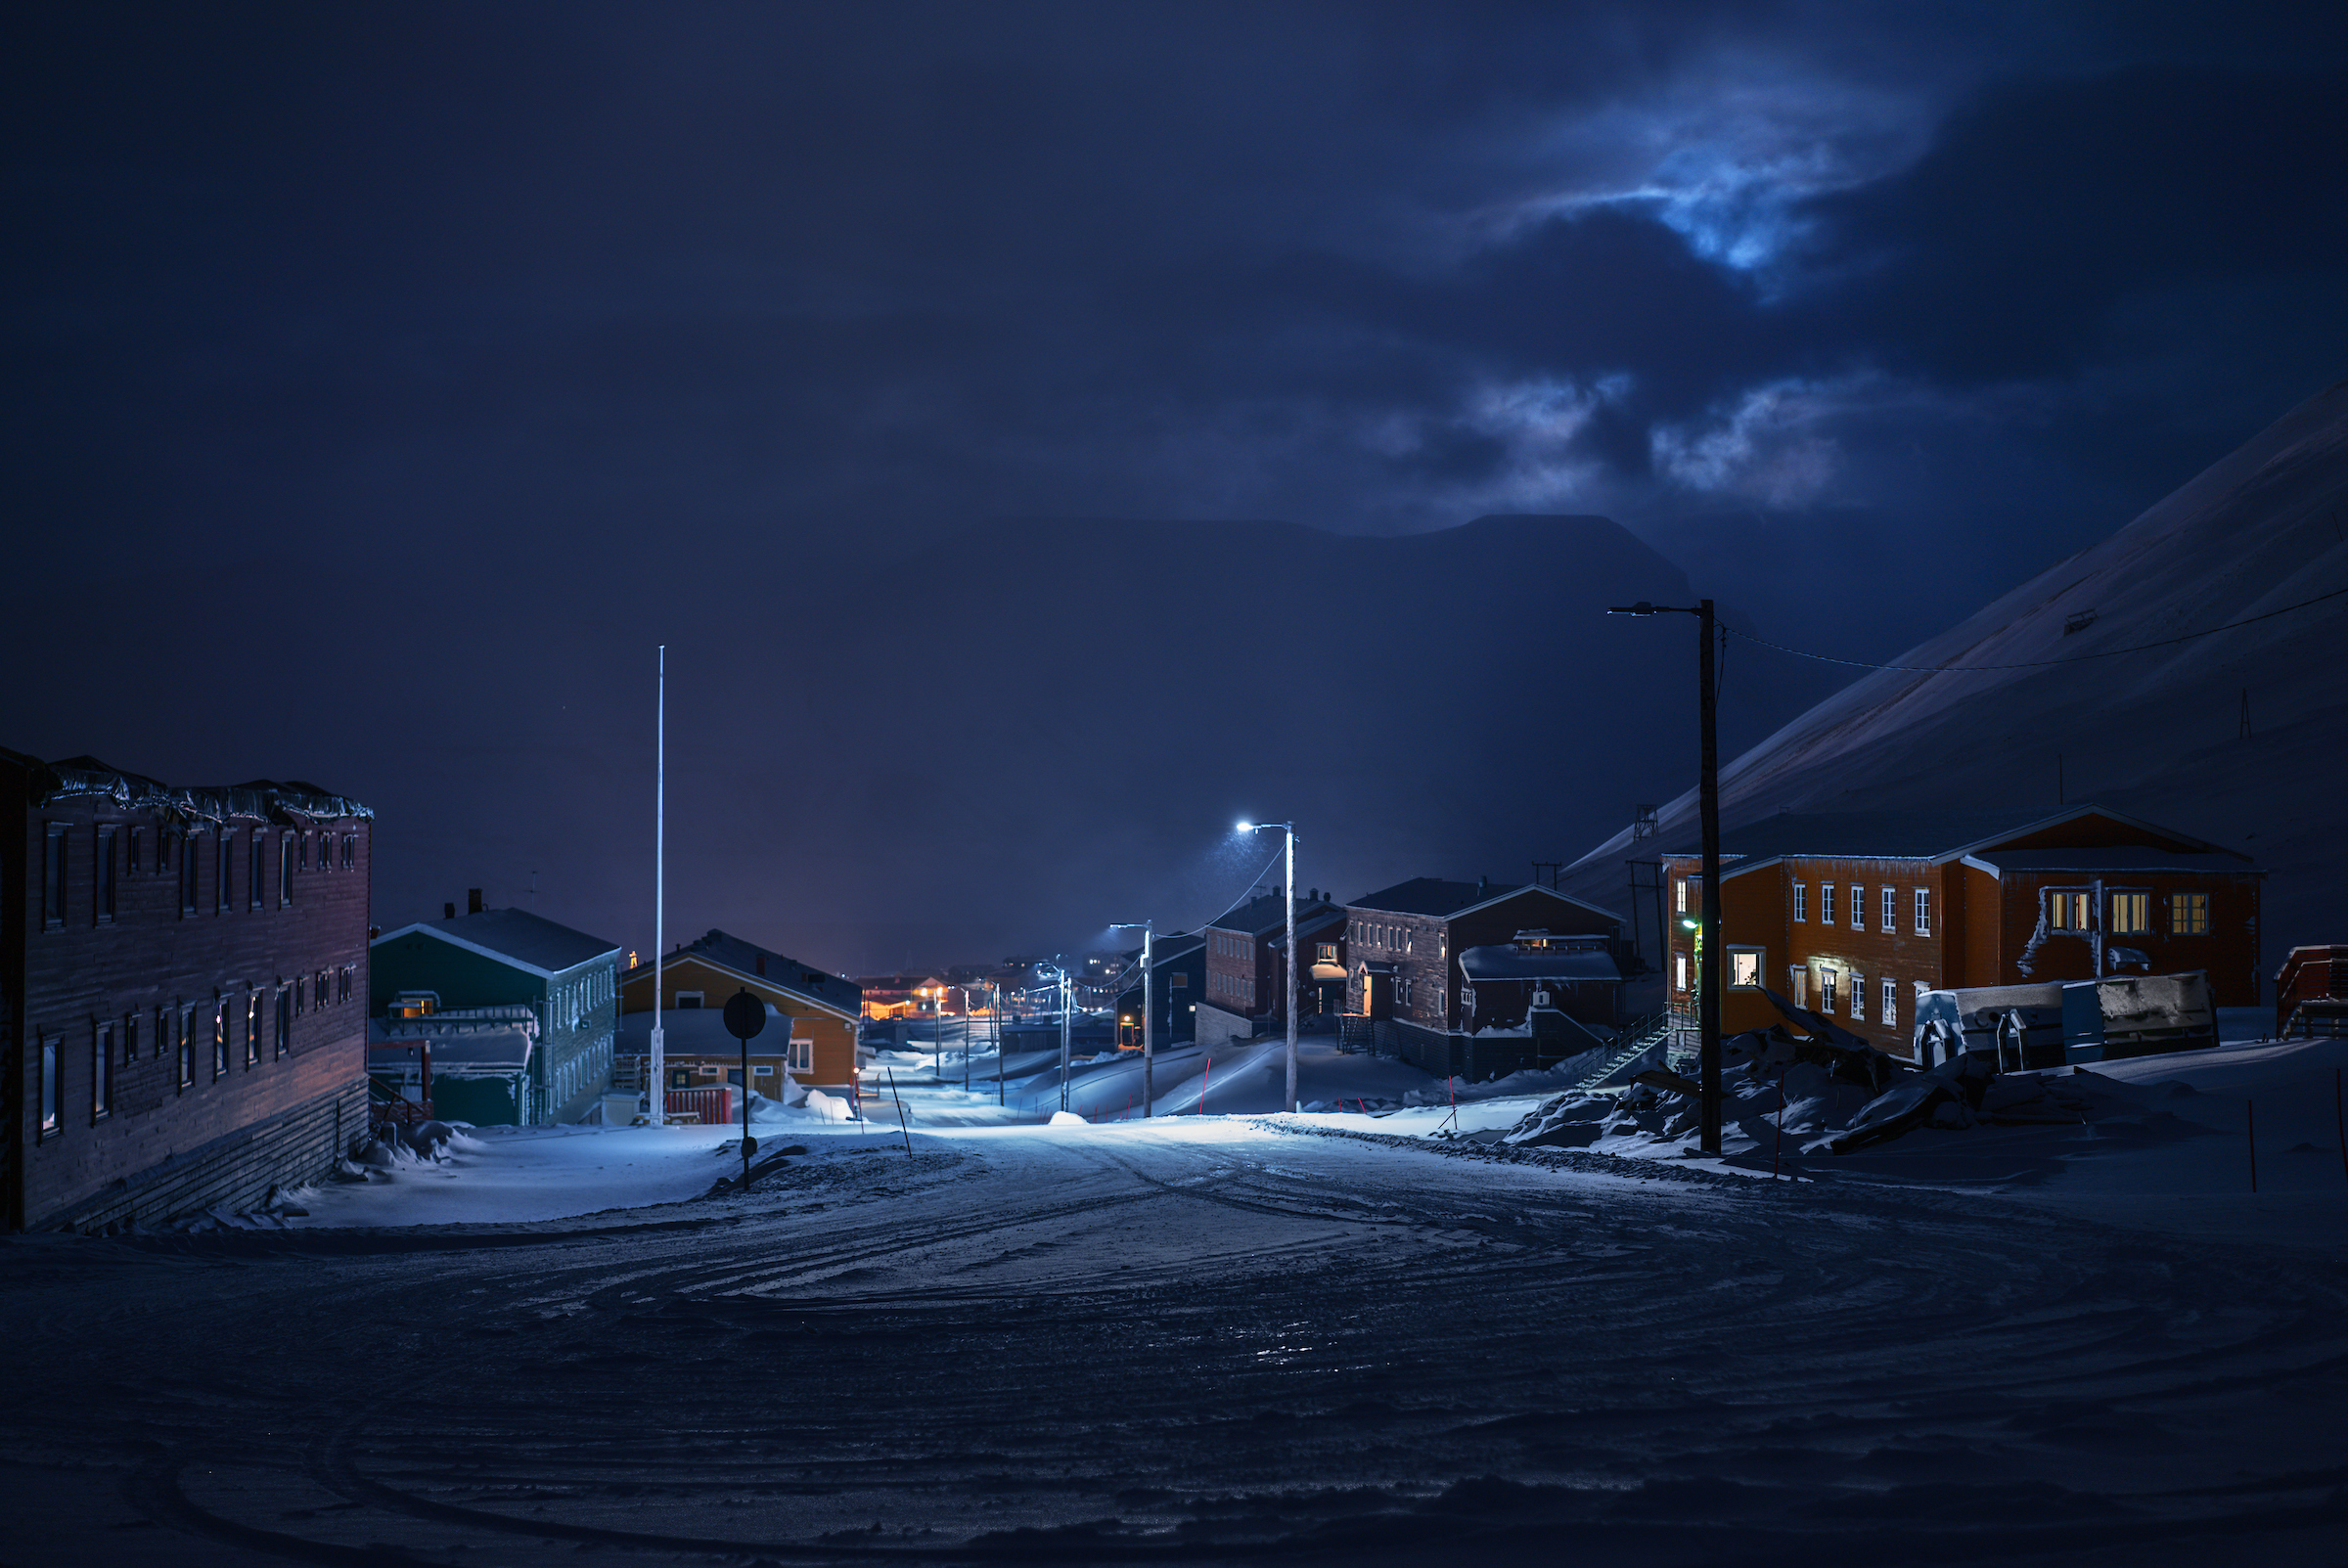 SVALBARD_norway_longyearbyen_city_lights_polar_night_by_maria_sahai.jpg